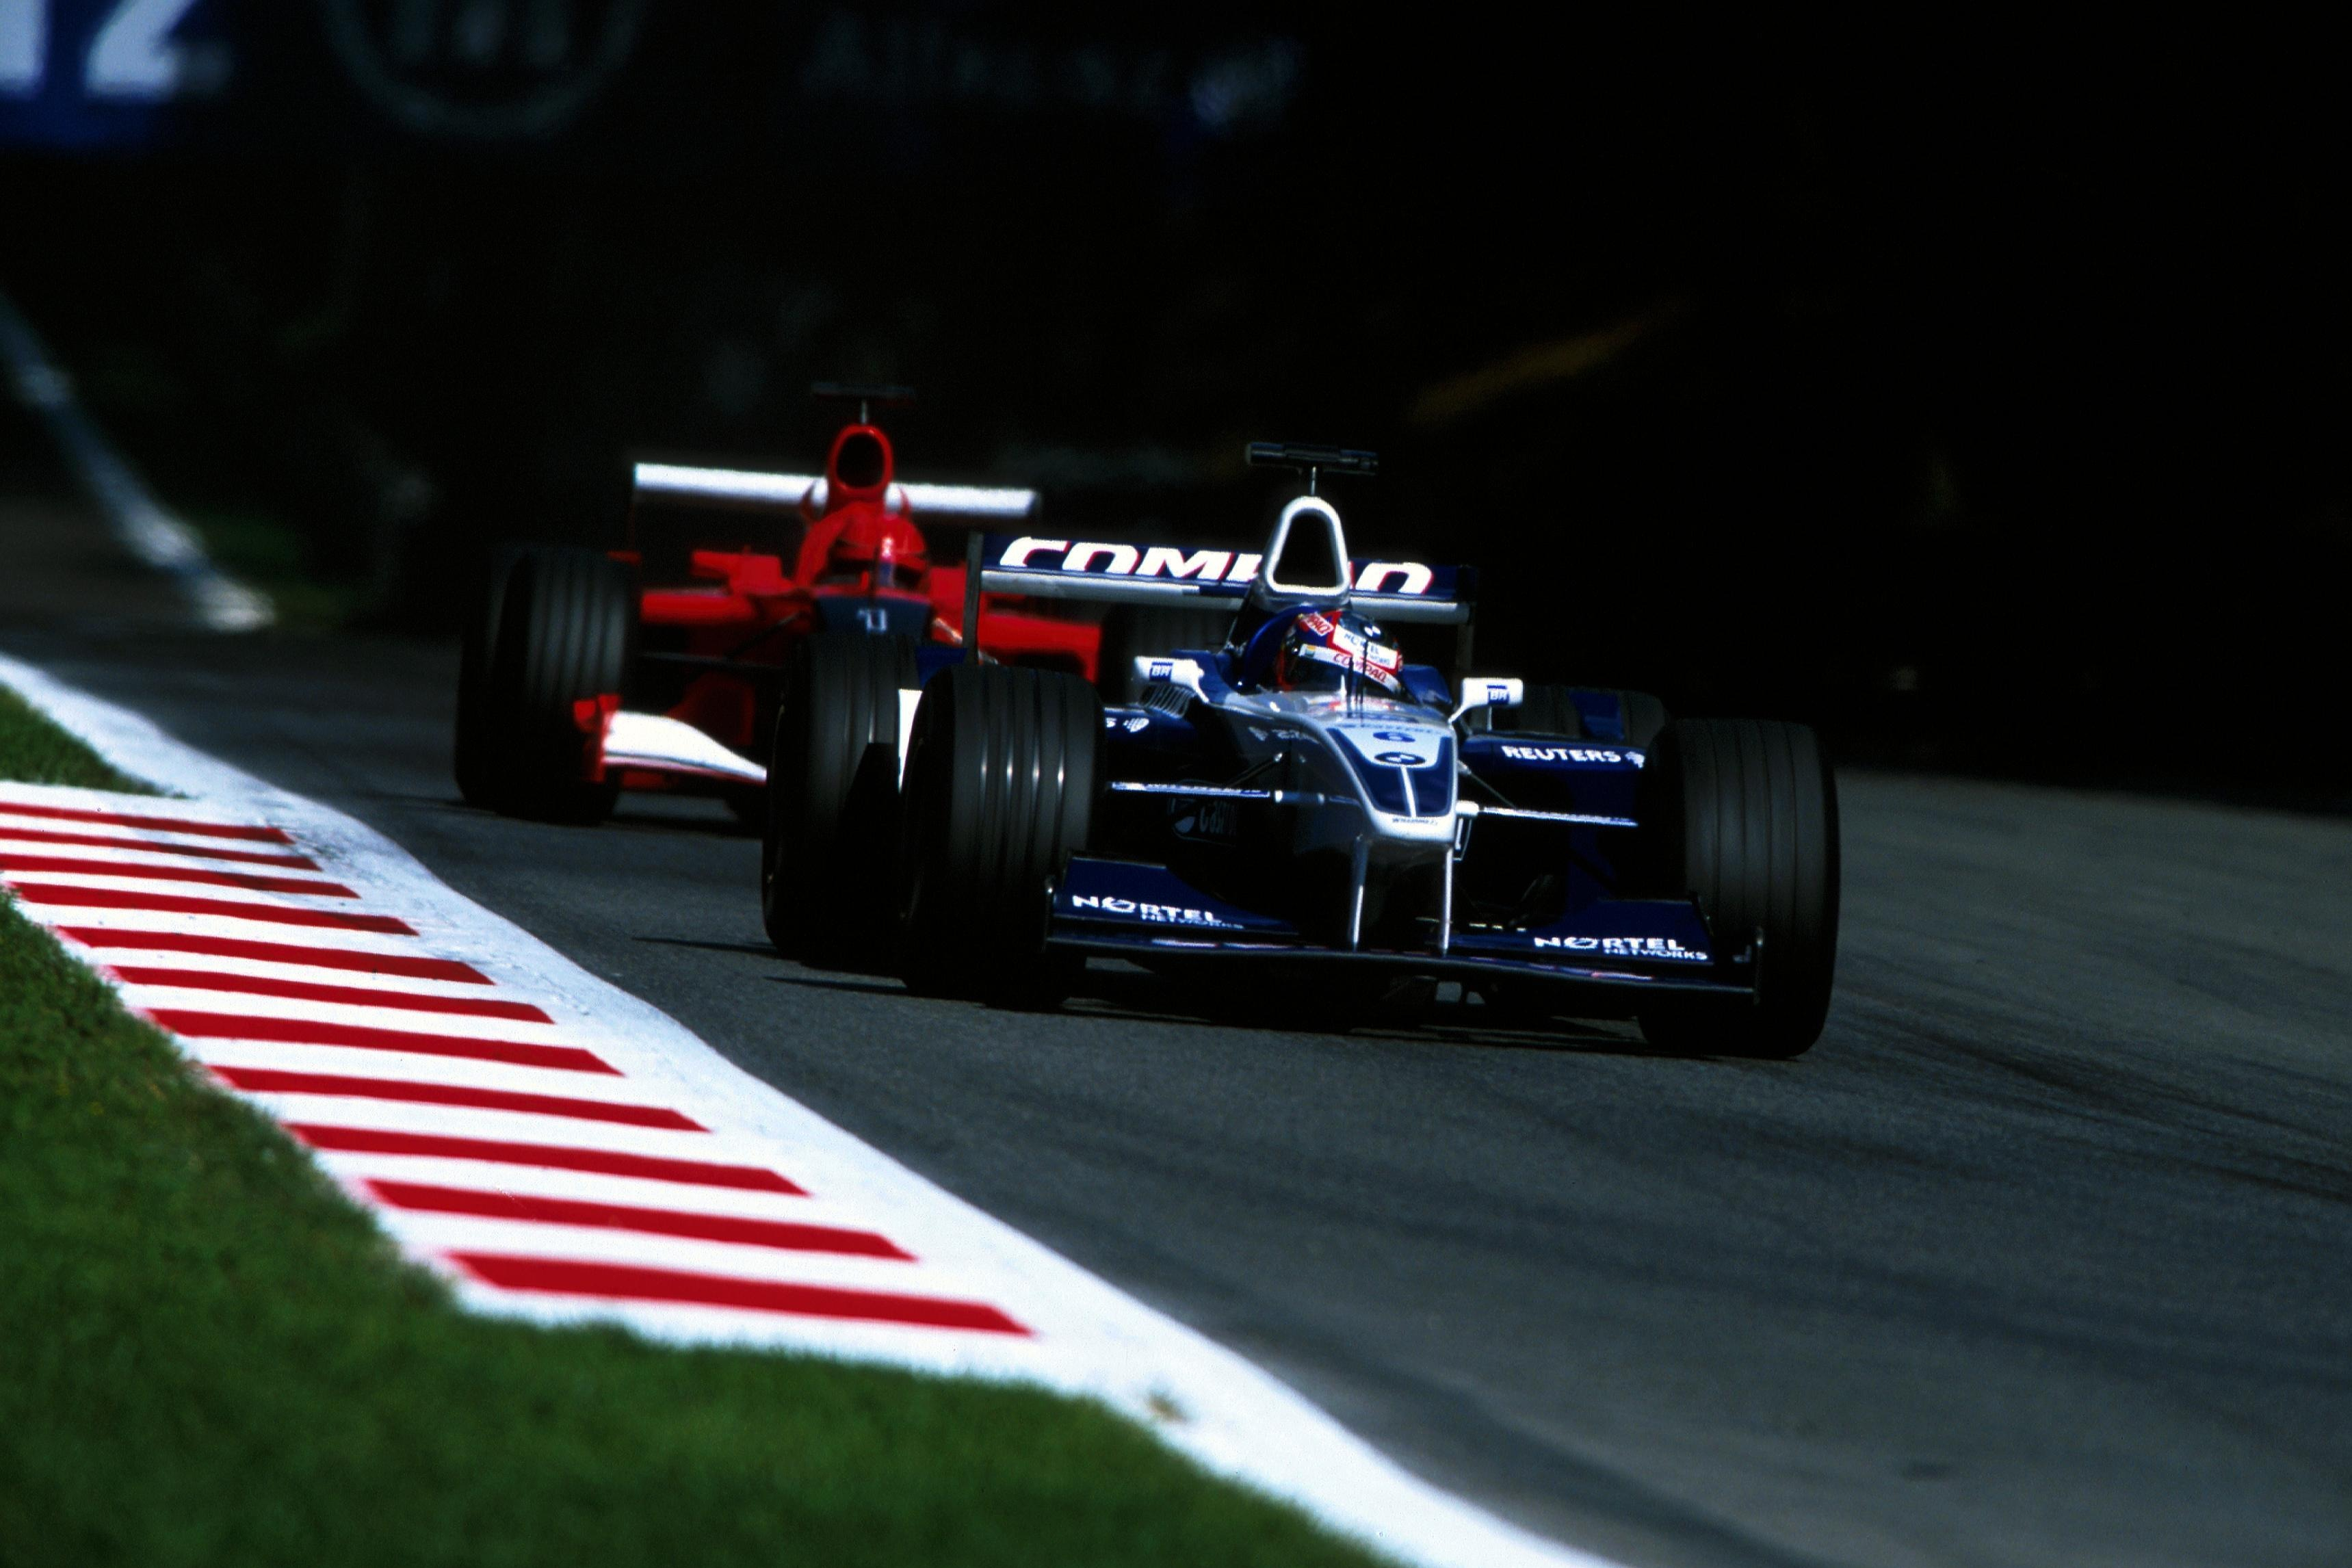 Off-colour Schumacher was outclassed as Montoya took his first win for Williams